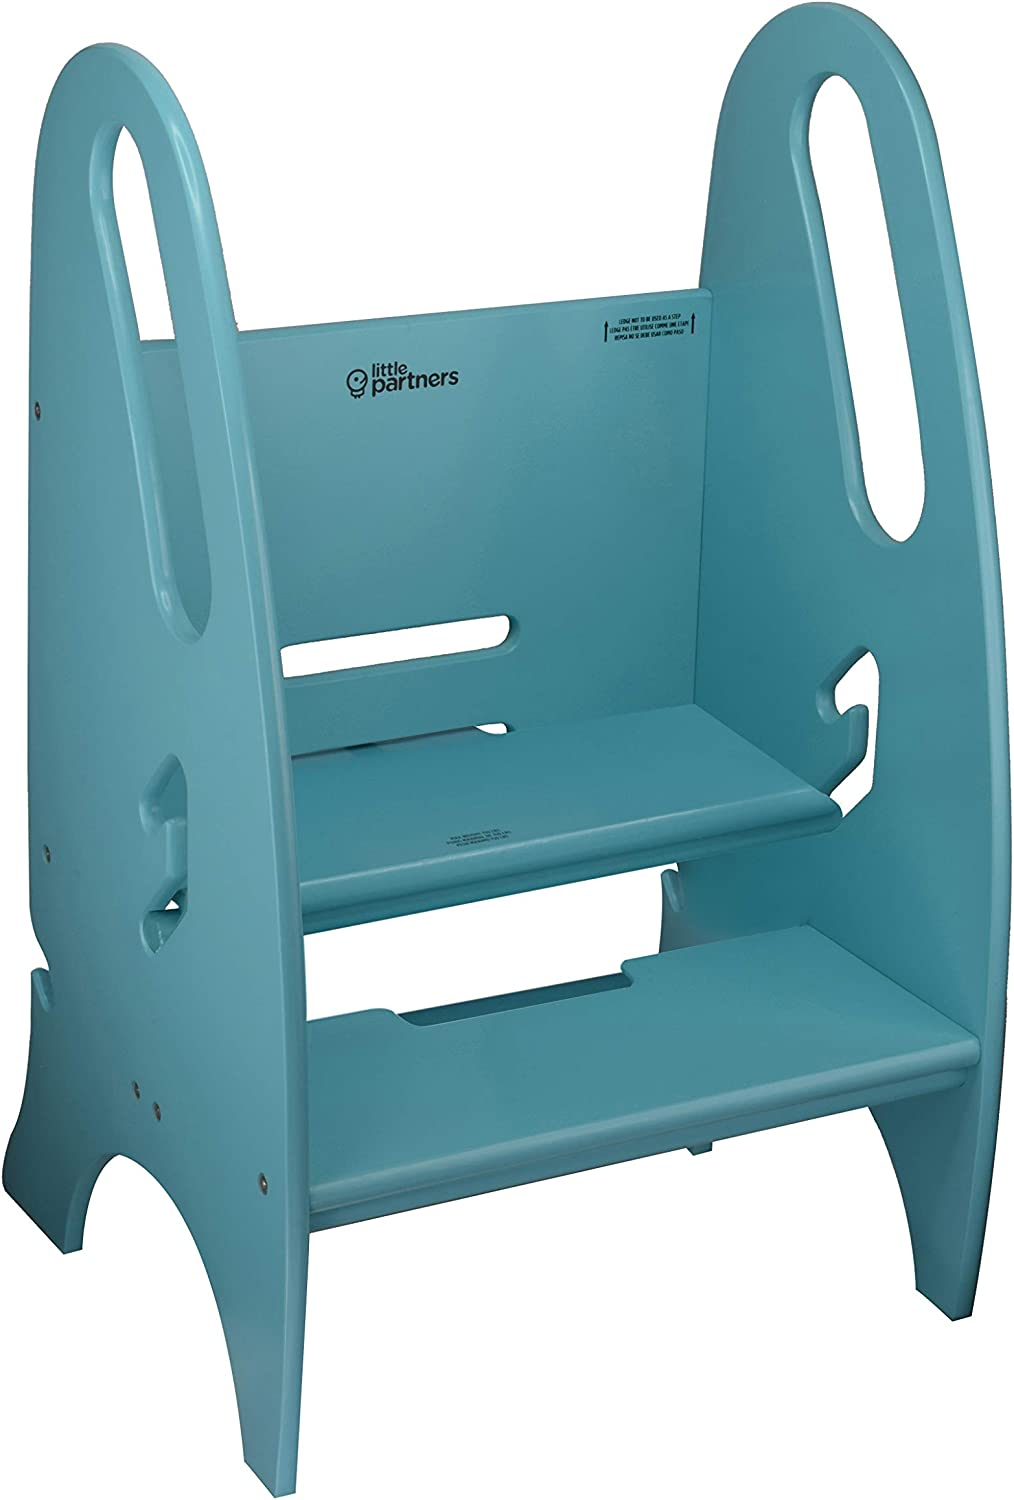 Wooden Non-Tip Design Step Stool with 3 Position Height Adjustment for Both Toddlers /& Adults Supports Up to 150lbs Little Partners Adjustable Height Growing Step Stool